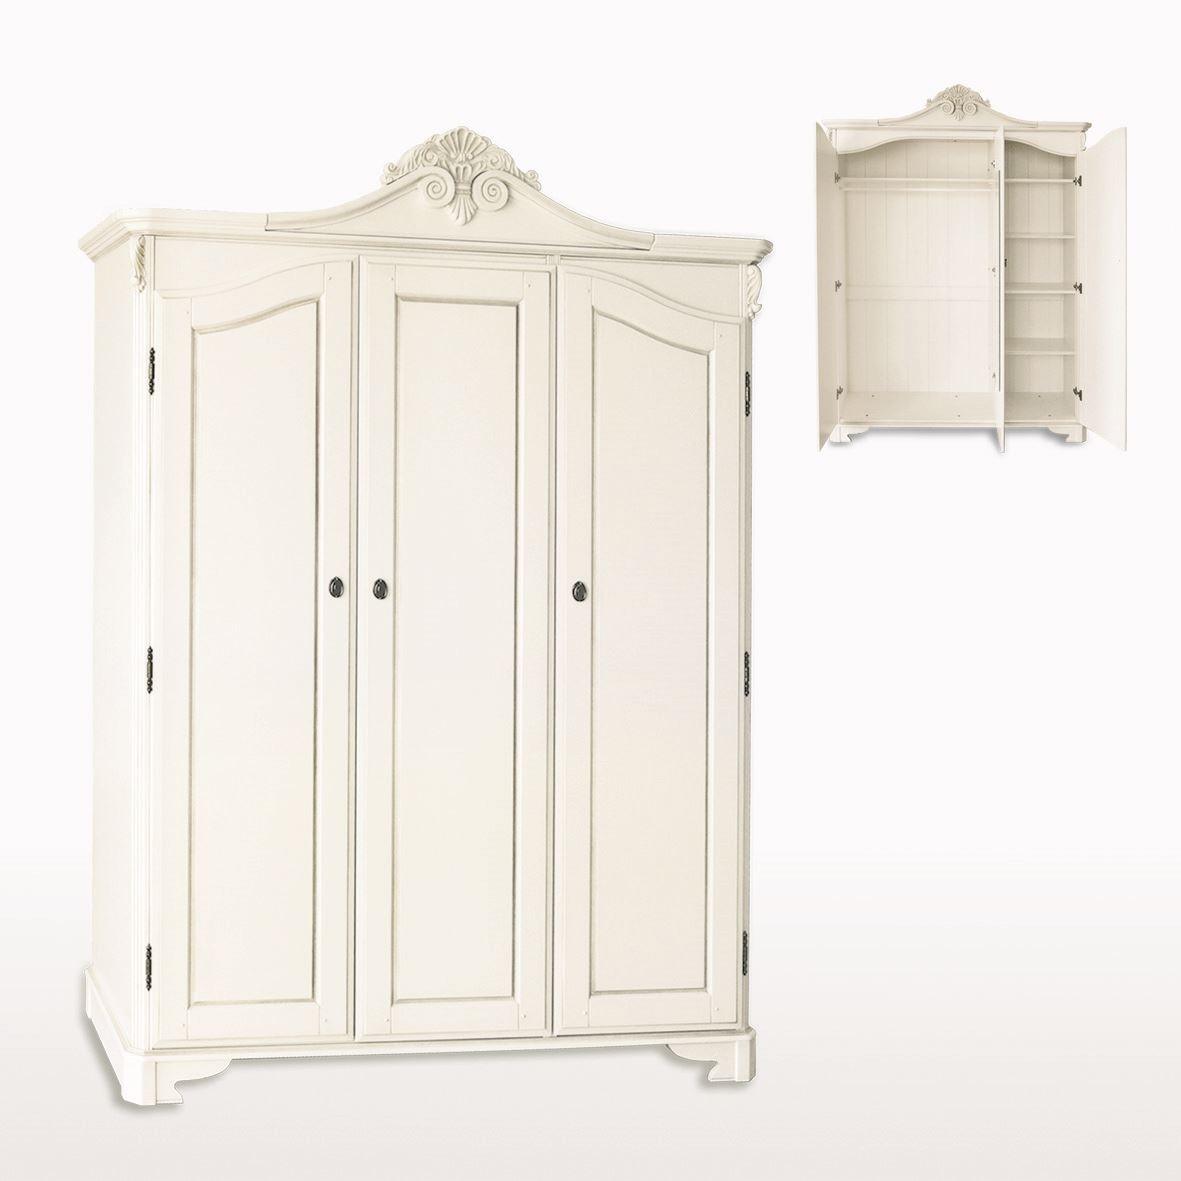 Amore' - Triple Door Wardrobe with Crested Top - ABJ303